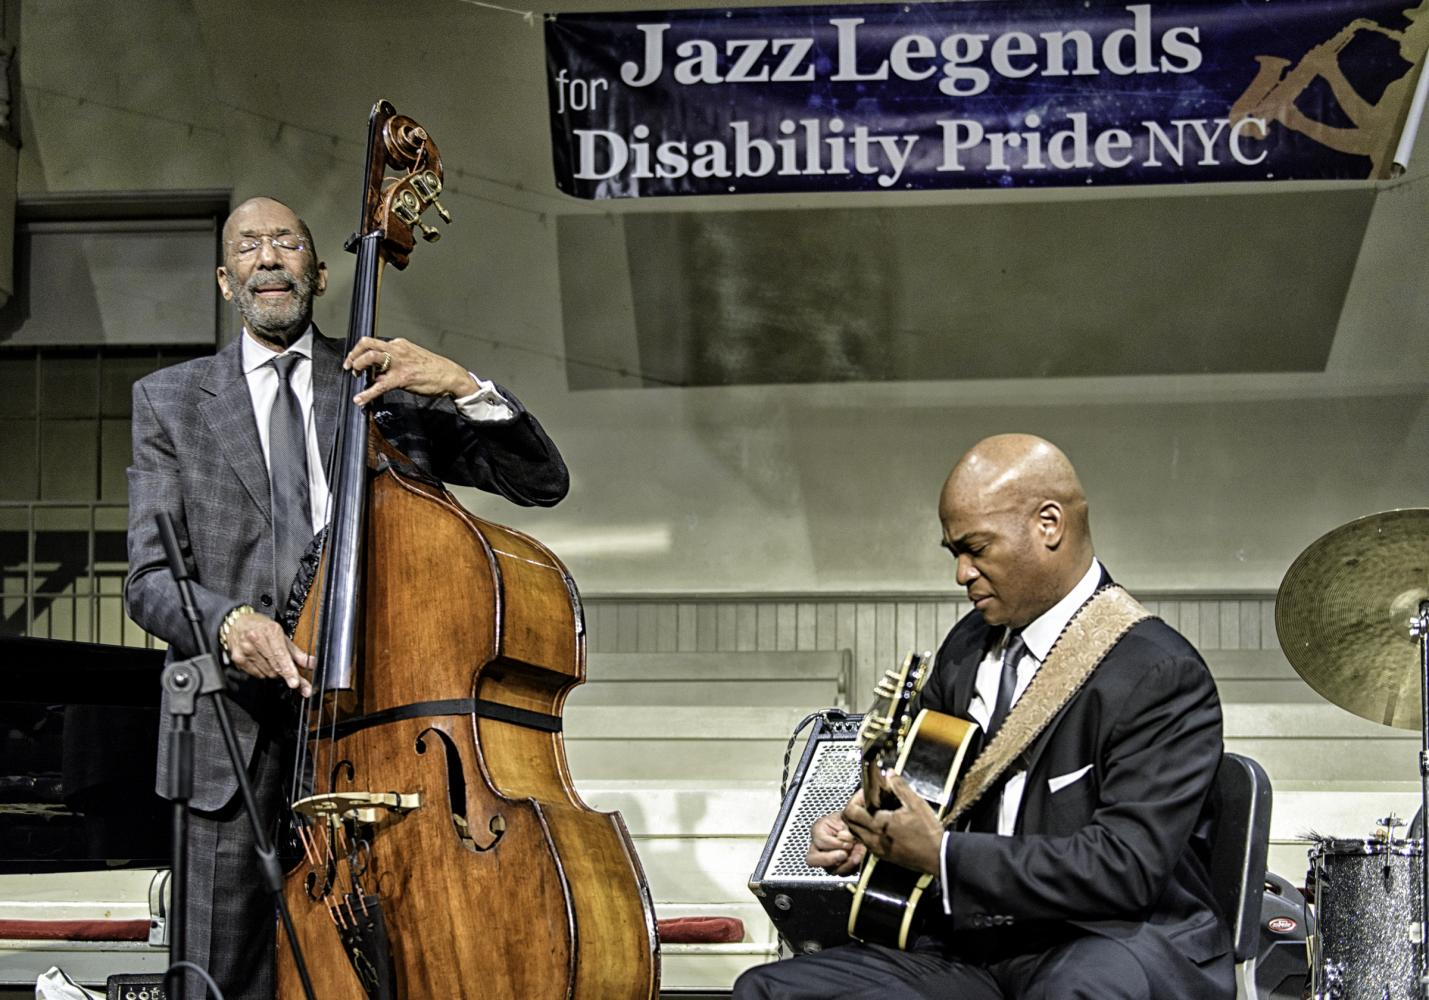 Ron Carter and Russell Malone At The Jazz Legends For Disability Pride At The NYC Winter Jazzfest 2017